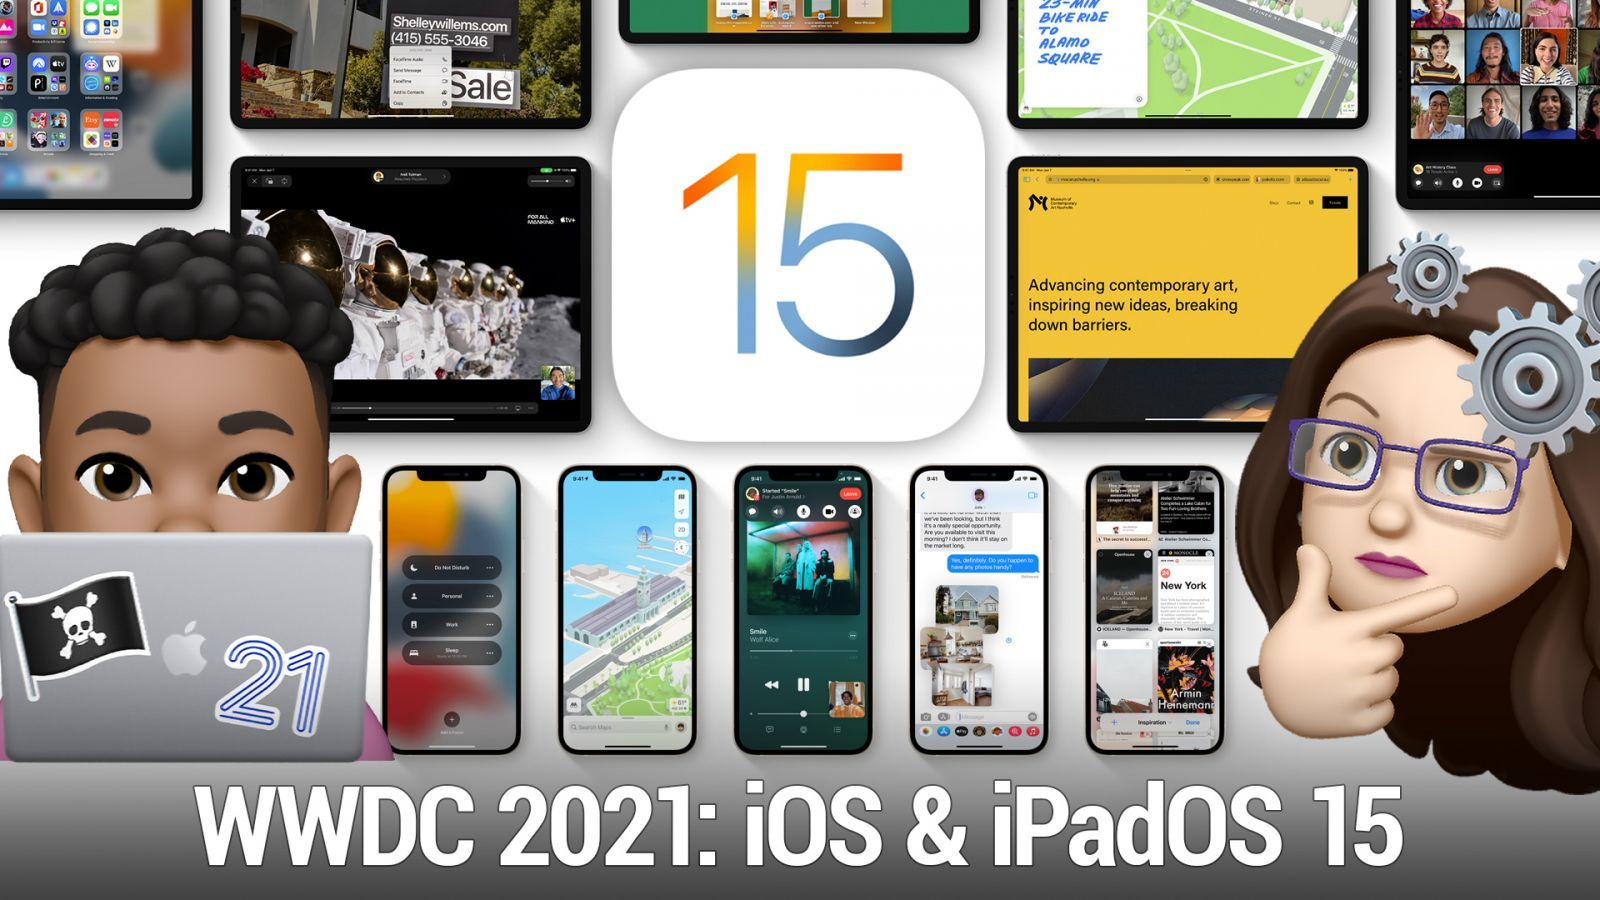 What to look forward to in iOS 15, iPadOS 15, and watchOS 8